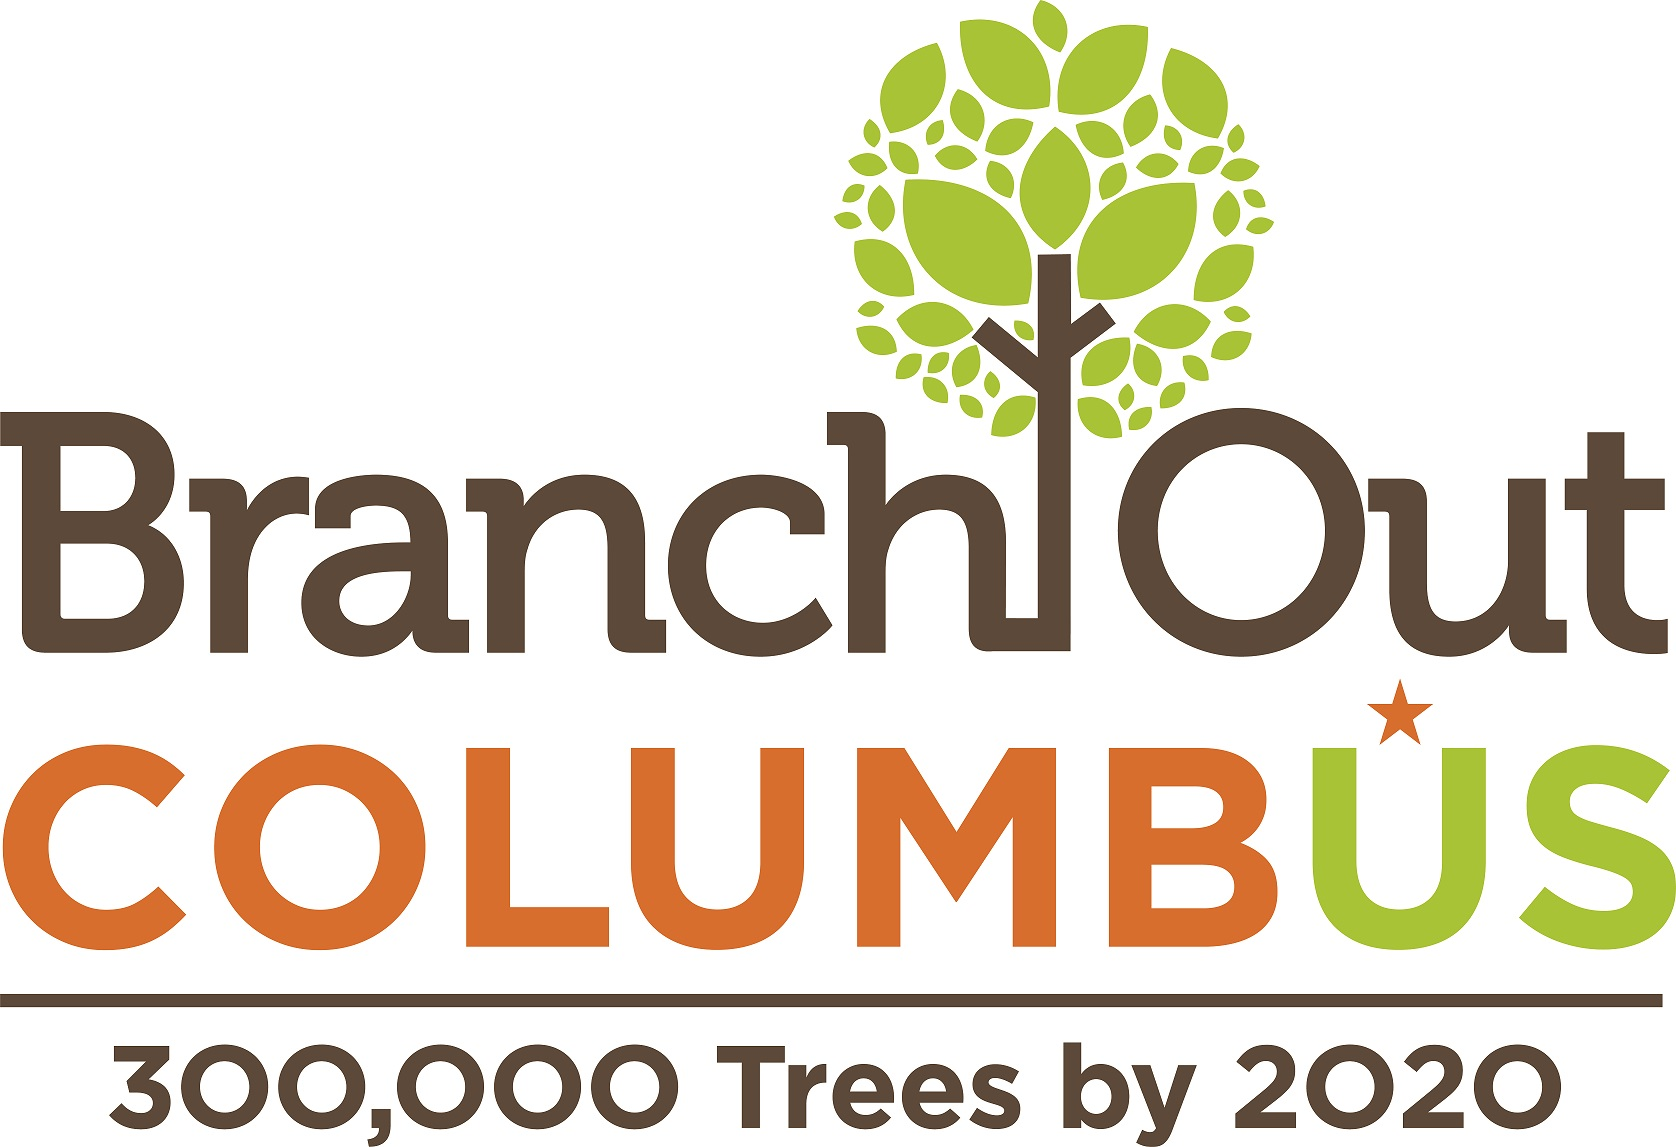 Branch Out Columbus, 300,000 Trees by 2020